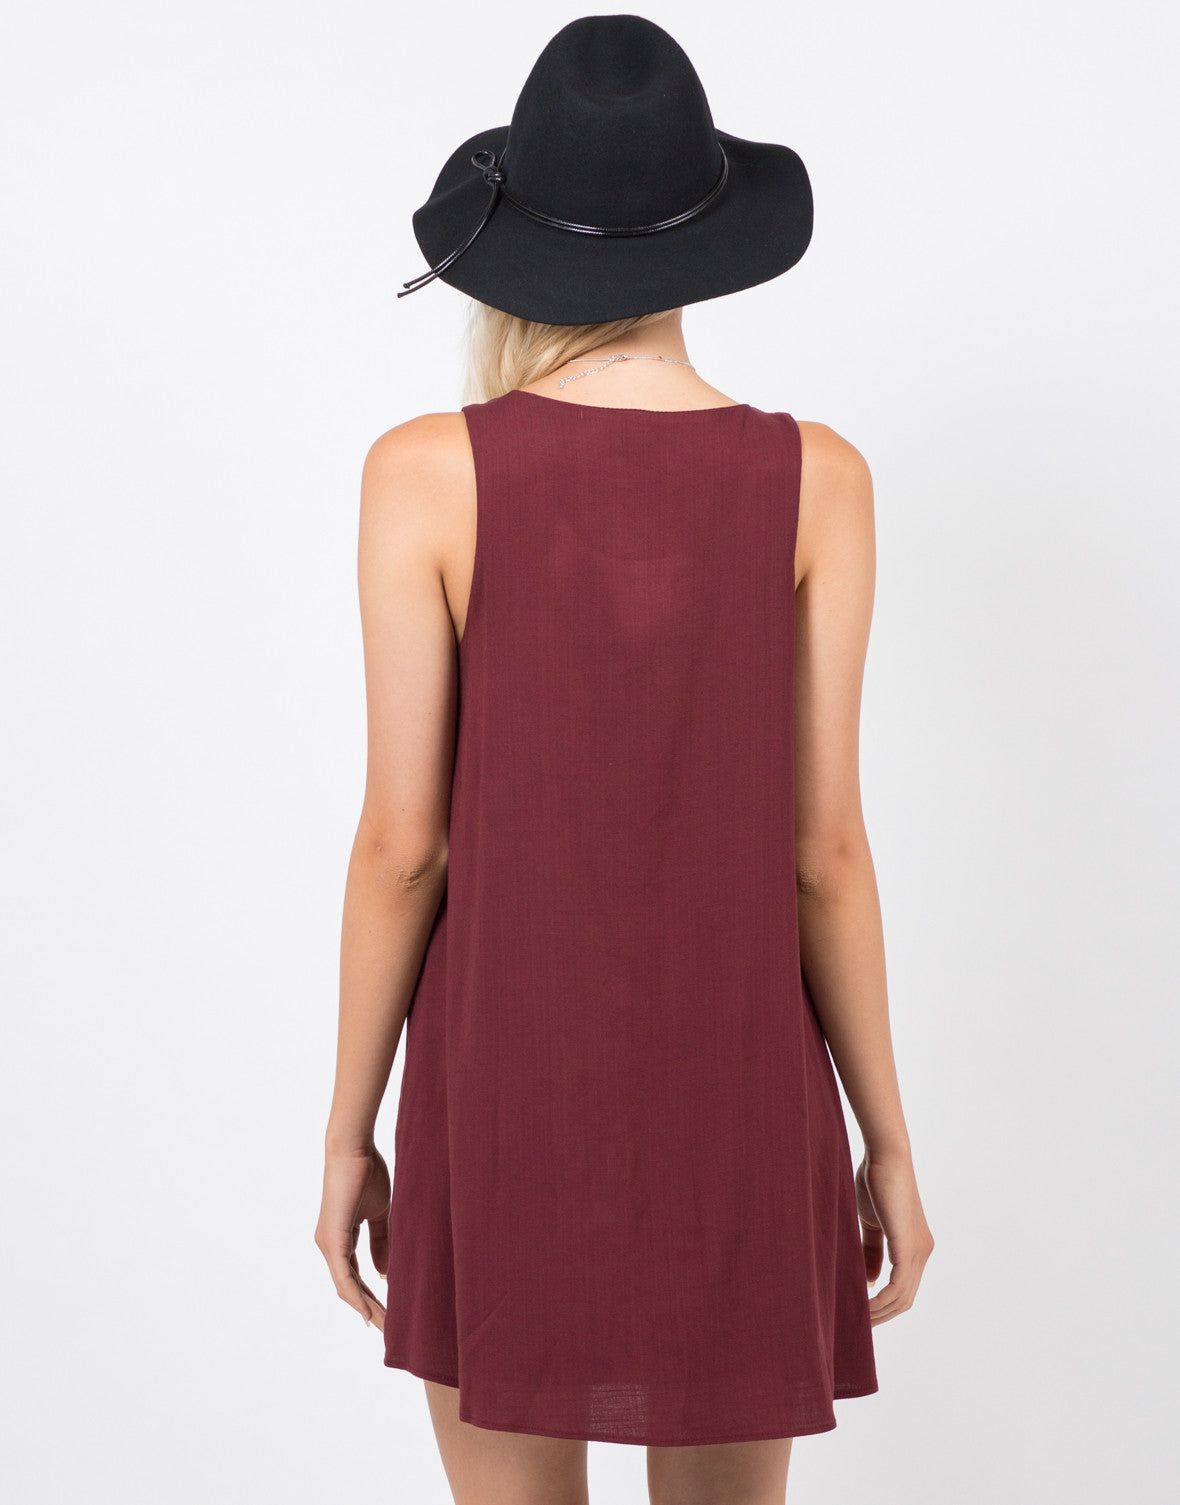 Back View of Swing Swing Dress